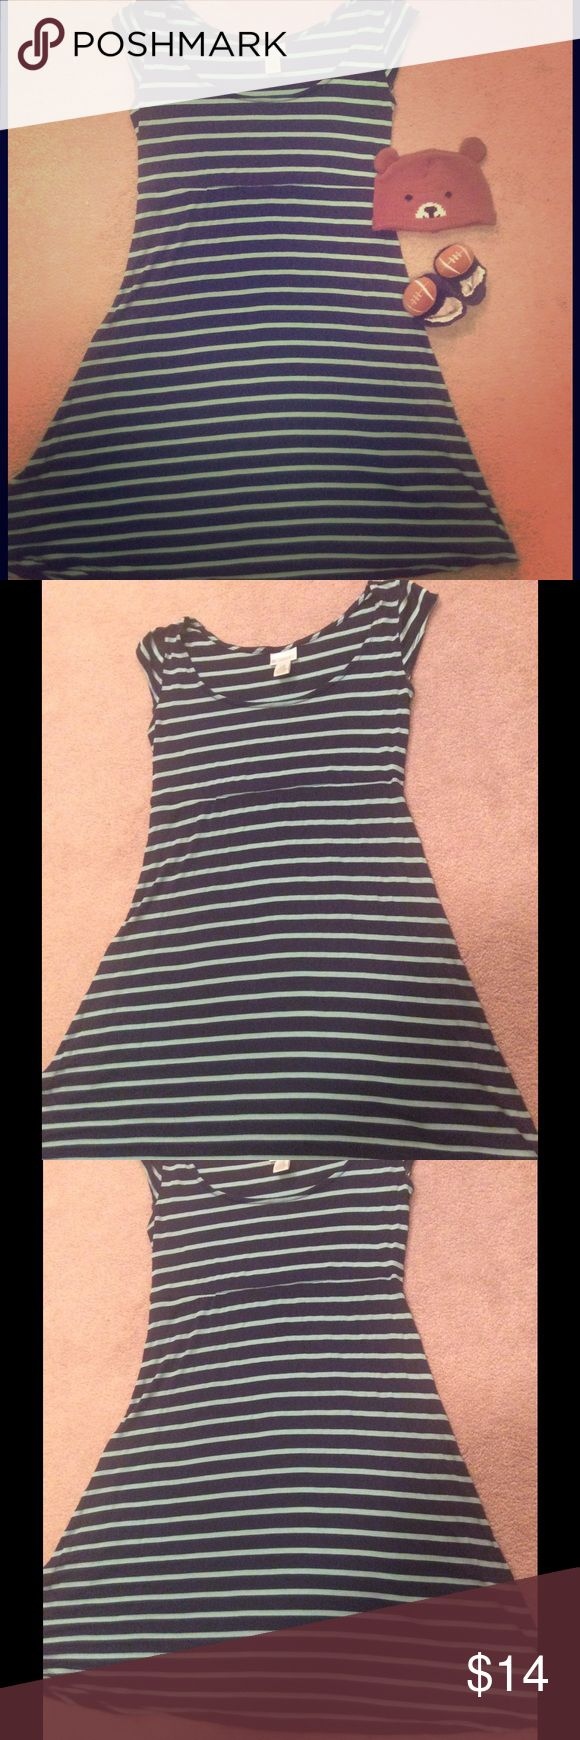 EUC Motherhood Maternity Dress SZ PS - Very soft! Dark and light blue striped short sleeve Motherhood Maternity dress size petite small (PS.) worn maybe a hand full of times if that much at all! Material is extremely soft and obviously has stretch to accommodate a growing belly. Motherhood Maternity Dresses Midi